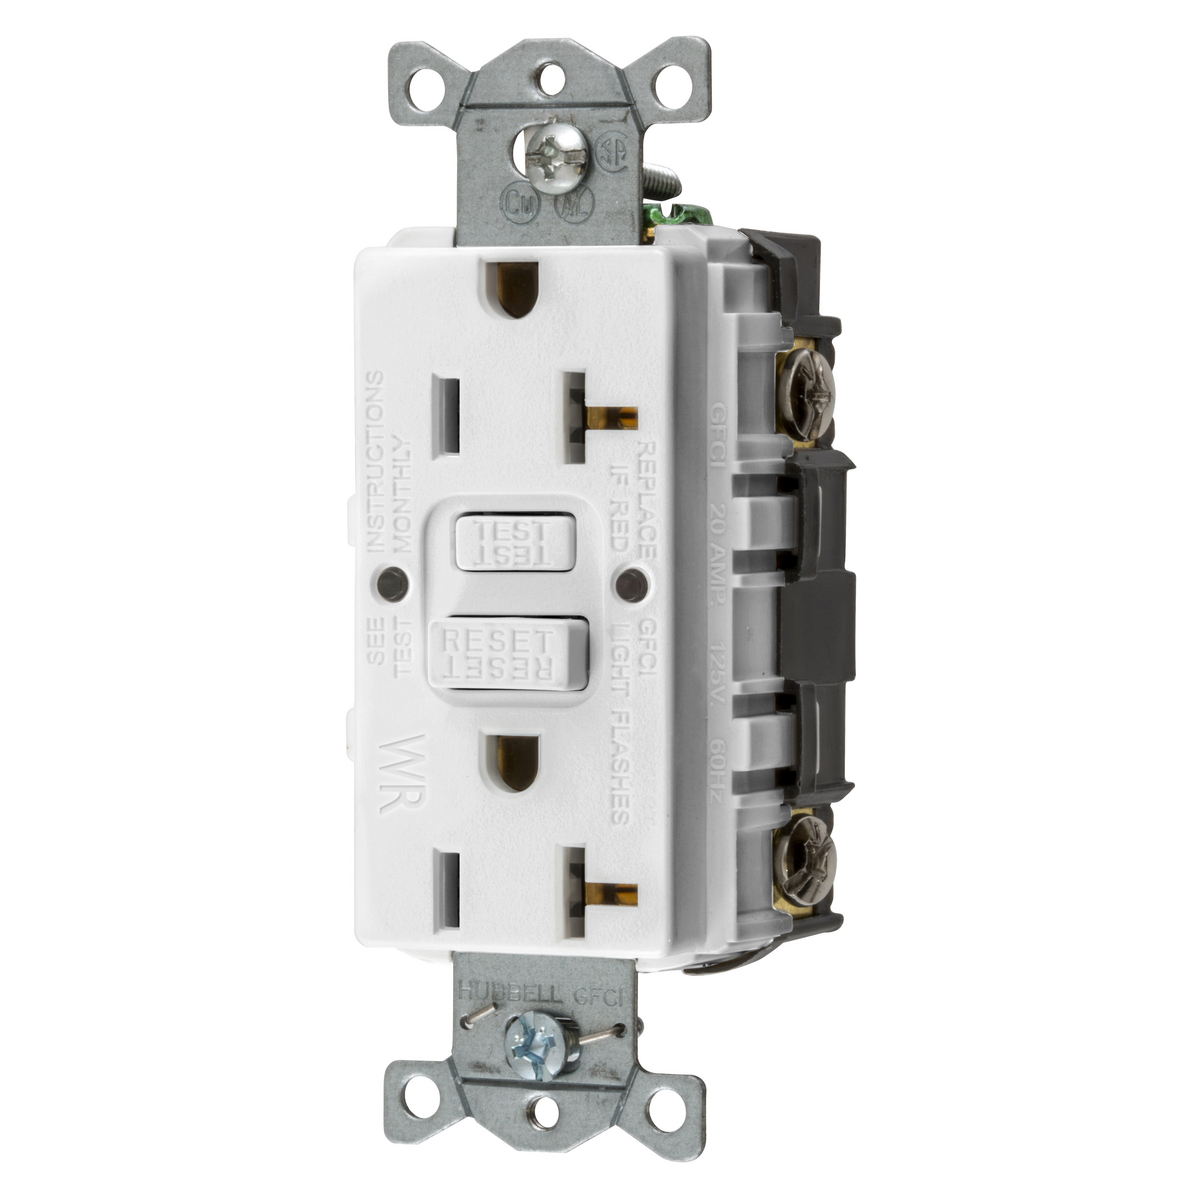 Hubbell GFWRST20W 20 Amp White Commercial Self-Test Weather Resistant Ground Fault Receptacle